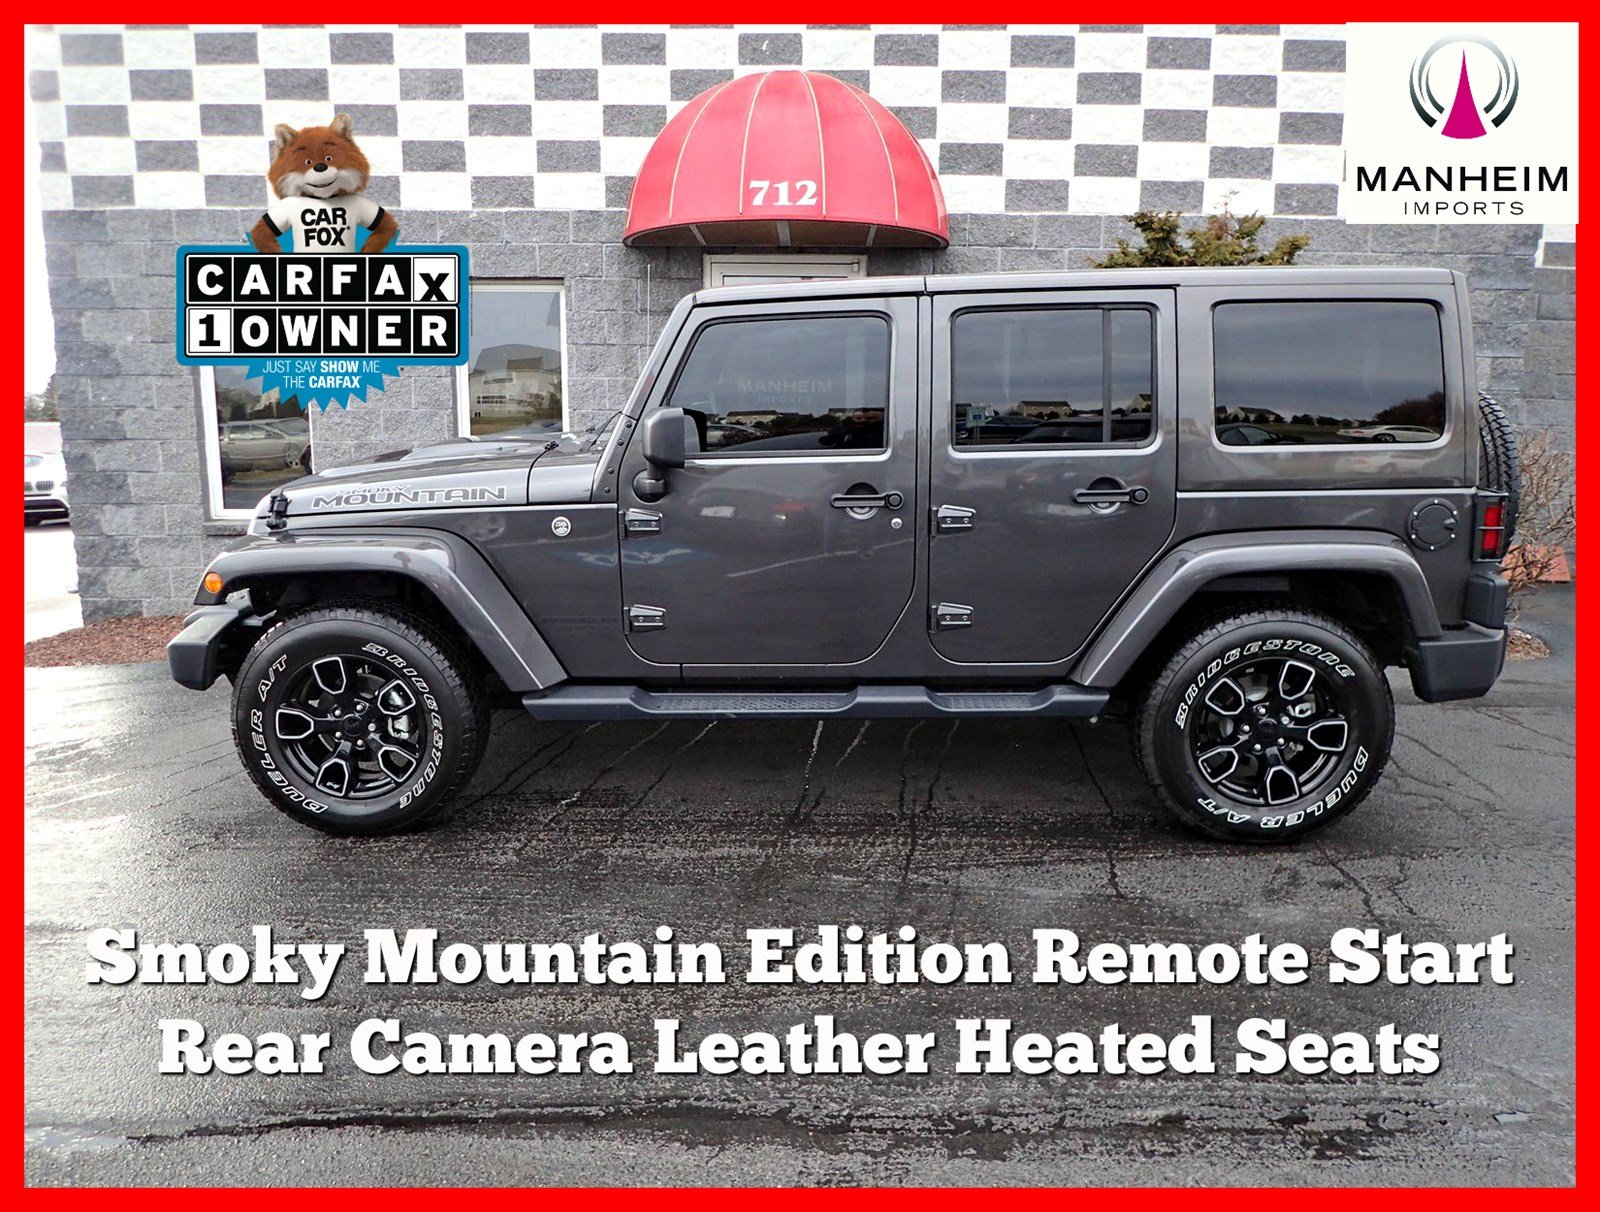 Pre-Owned 2017 Jeep Wrangler Unlimited Smoky Mountain